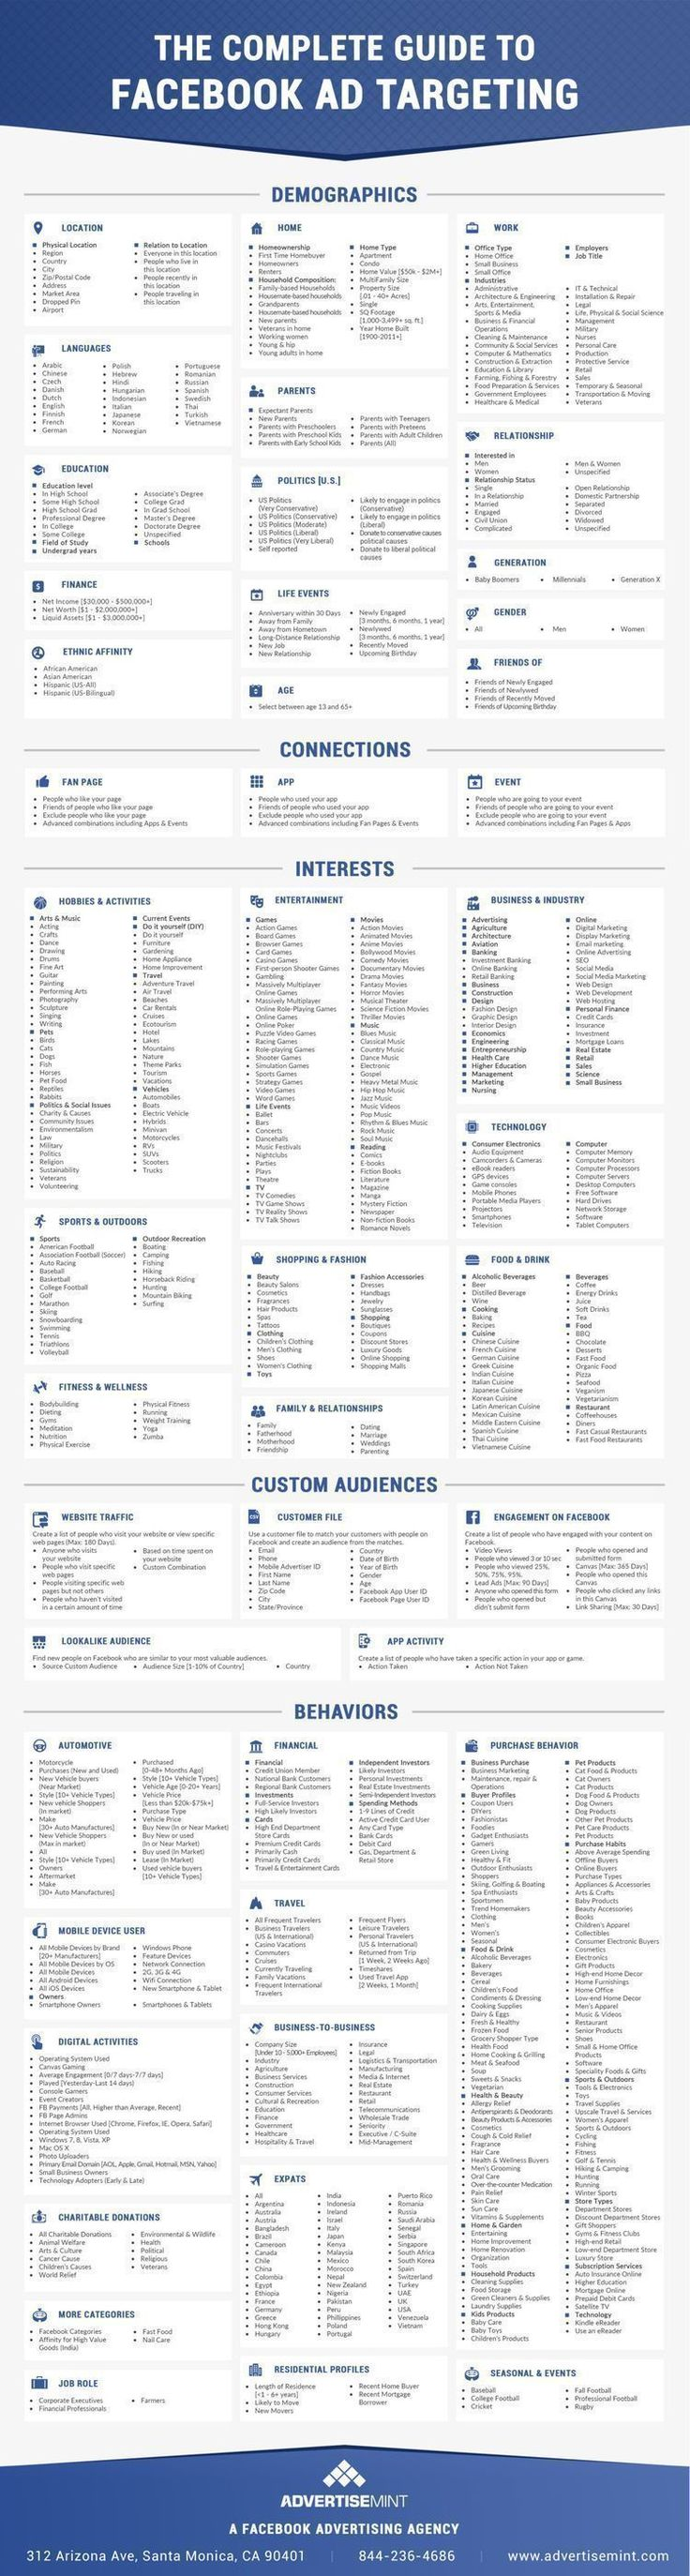 Facebook ad targeting guide. (Social media. Online marketing. Social ads. Infographic.)